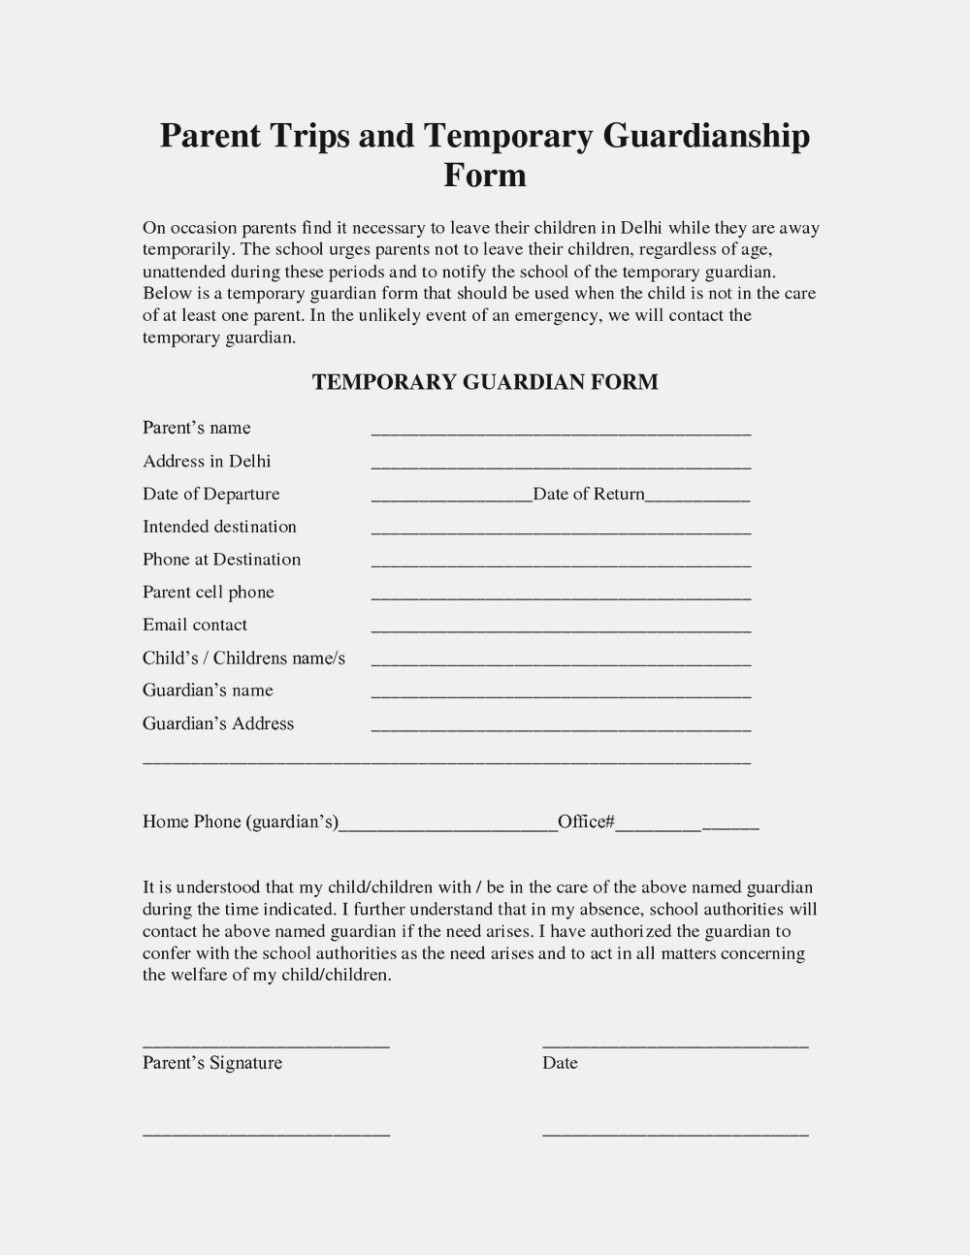 What's So Trendy About Free   The Invoice And Resume Template - Free Printable Child Custody Forms